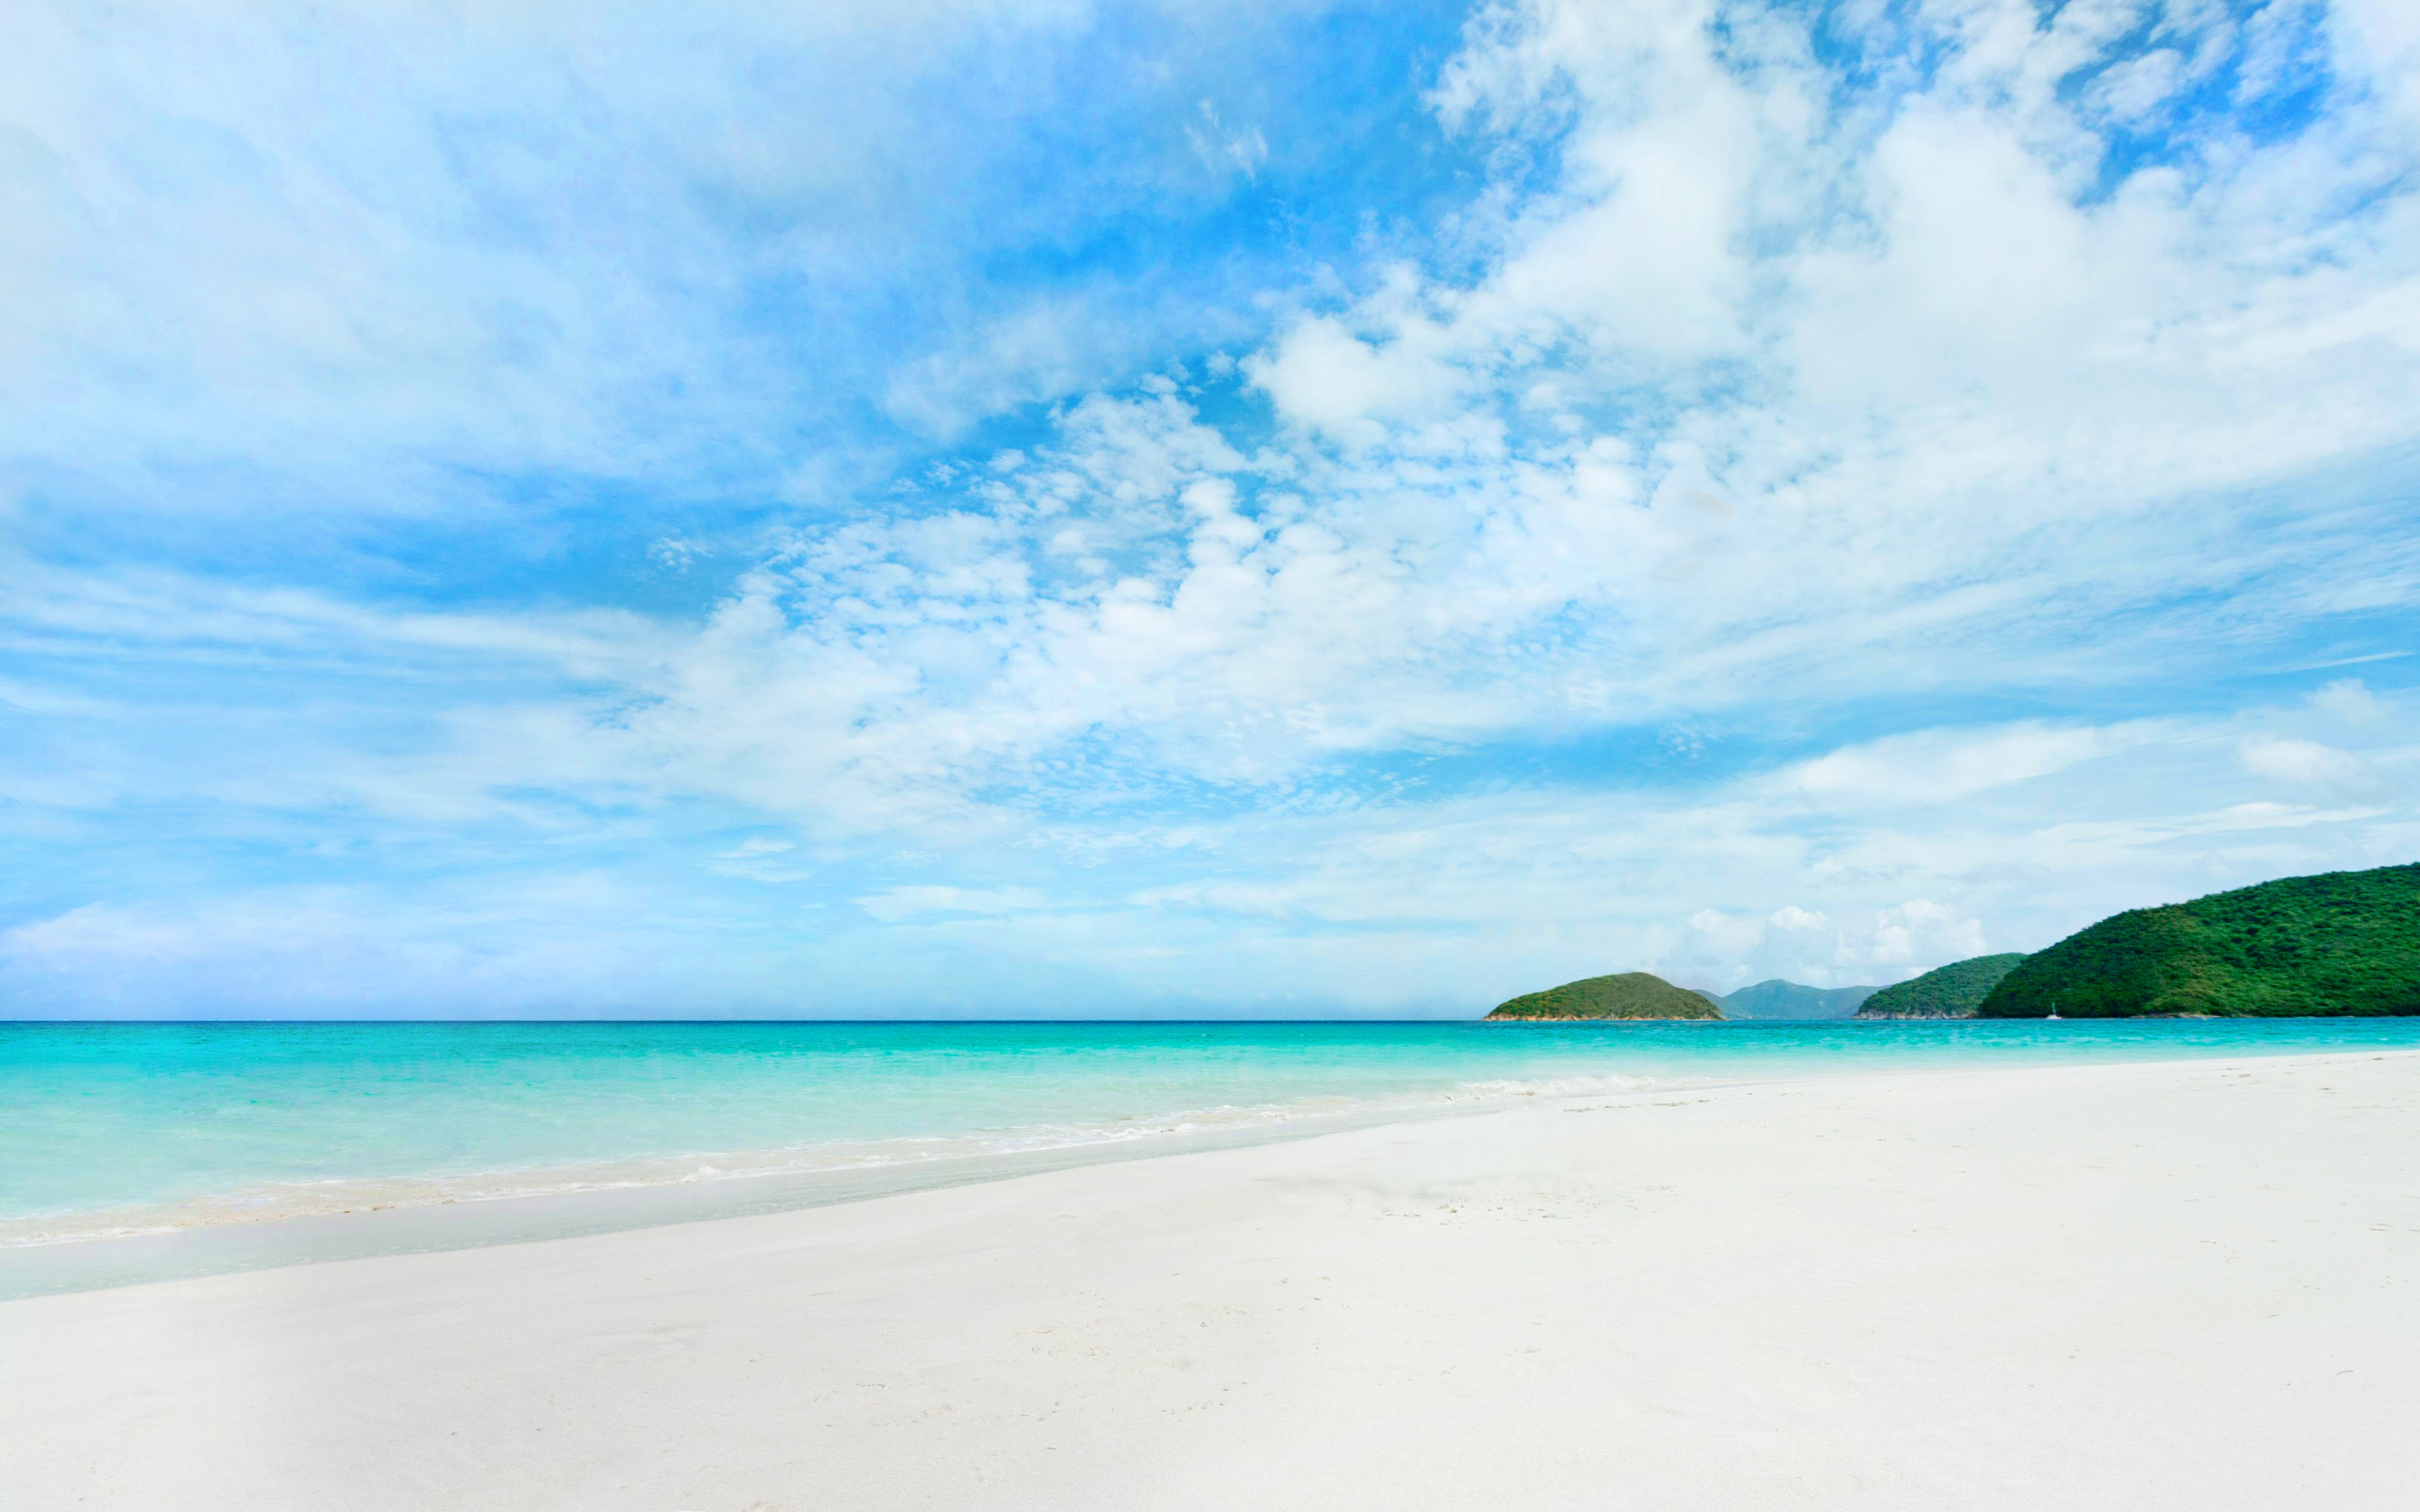 TROPICAL [25] paradise beach [02july2015thursday] [152348 ...